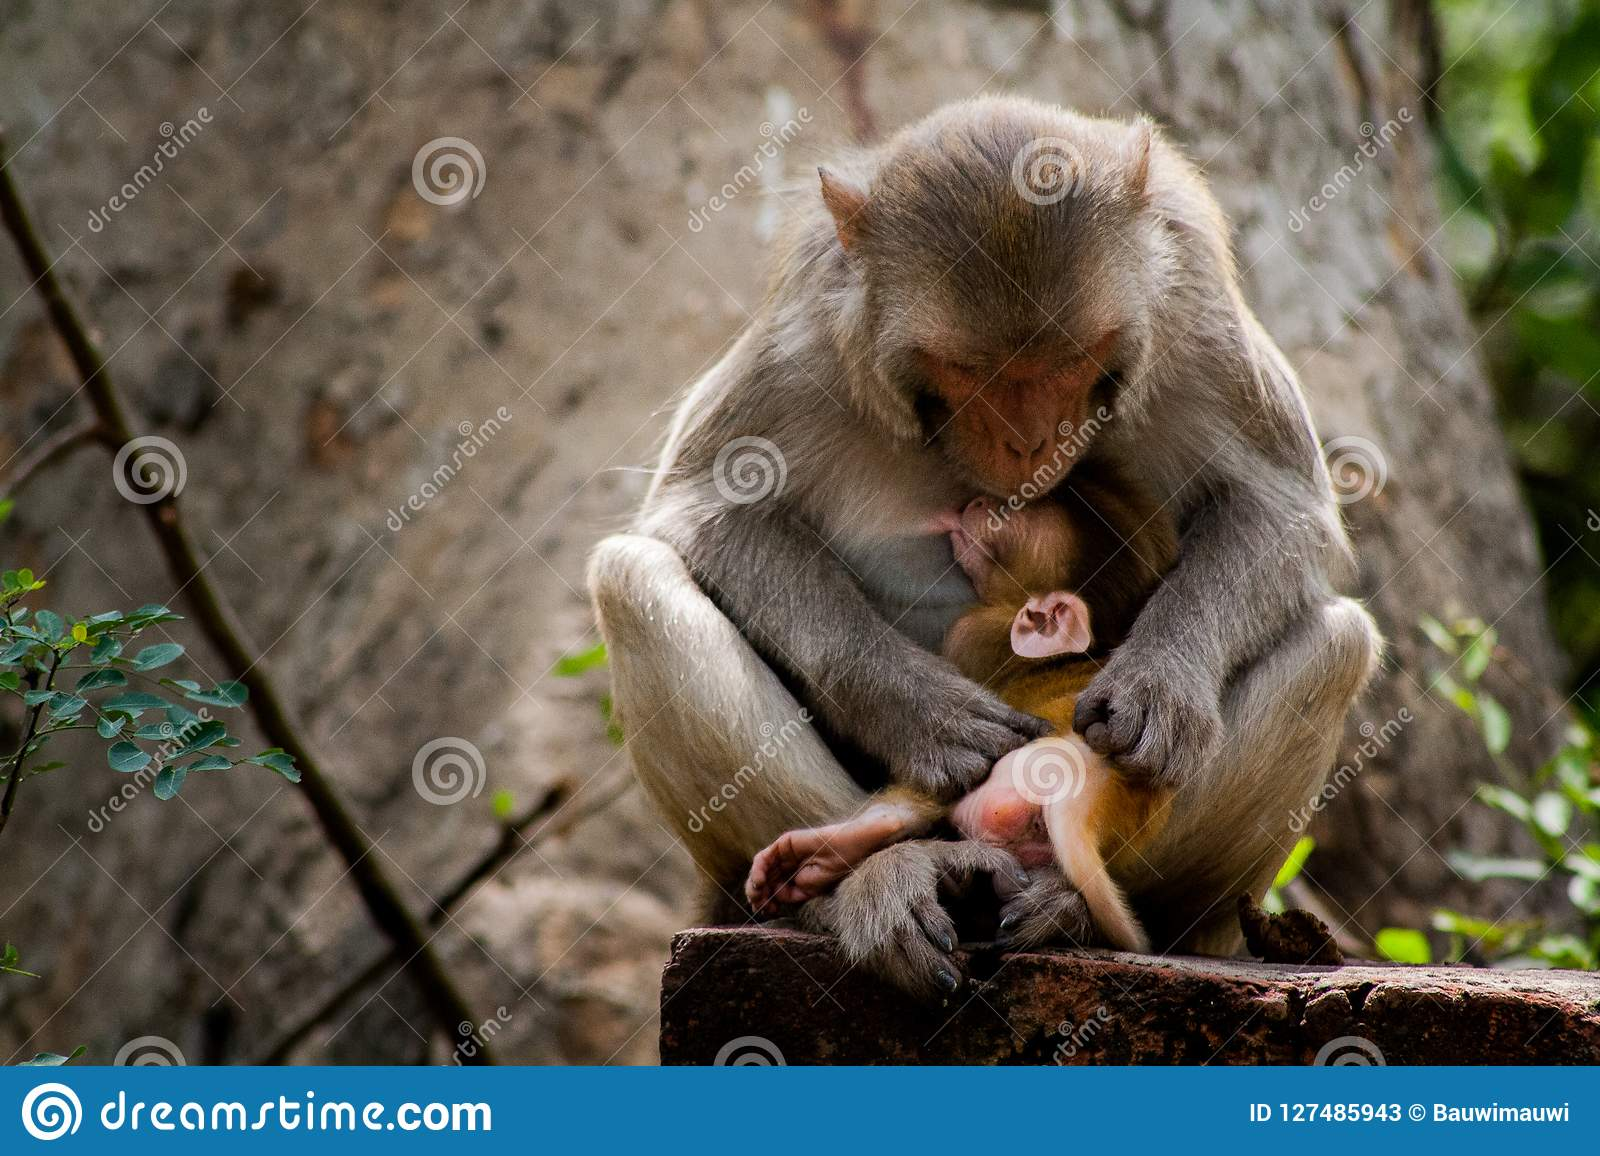 Rhesus Macaques feeding her baby